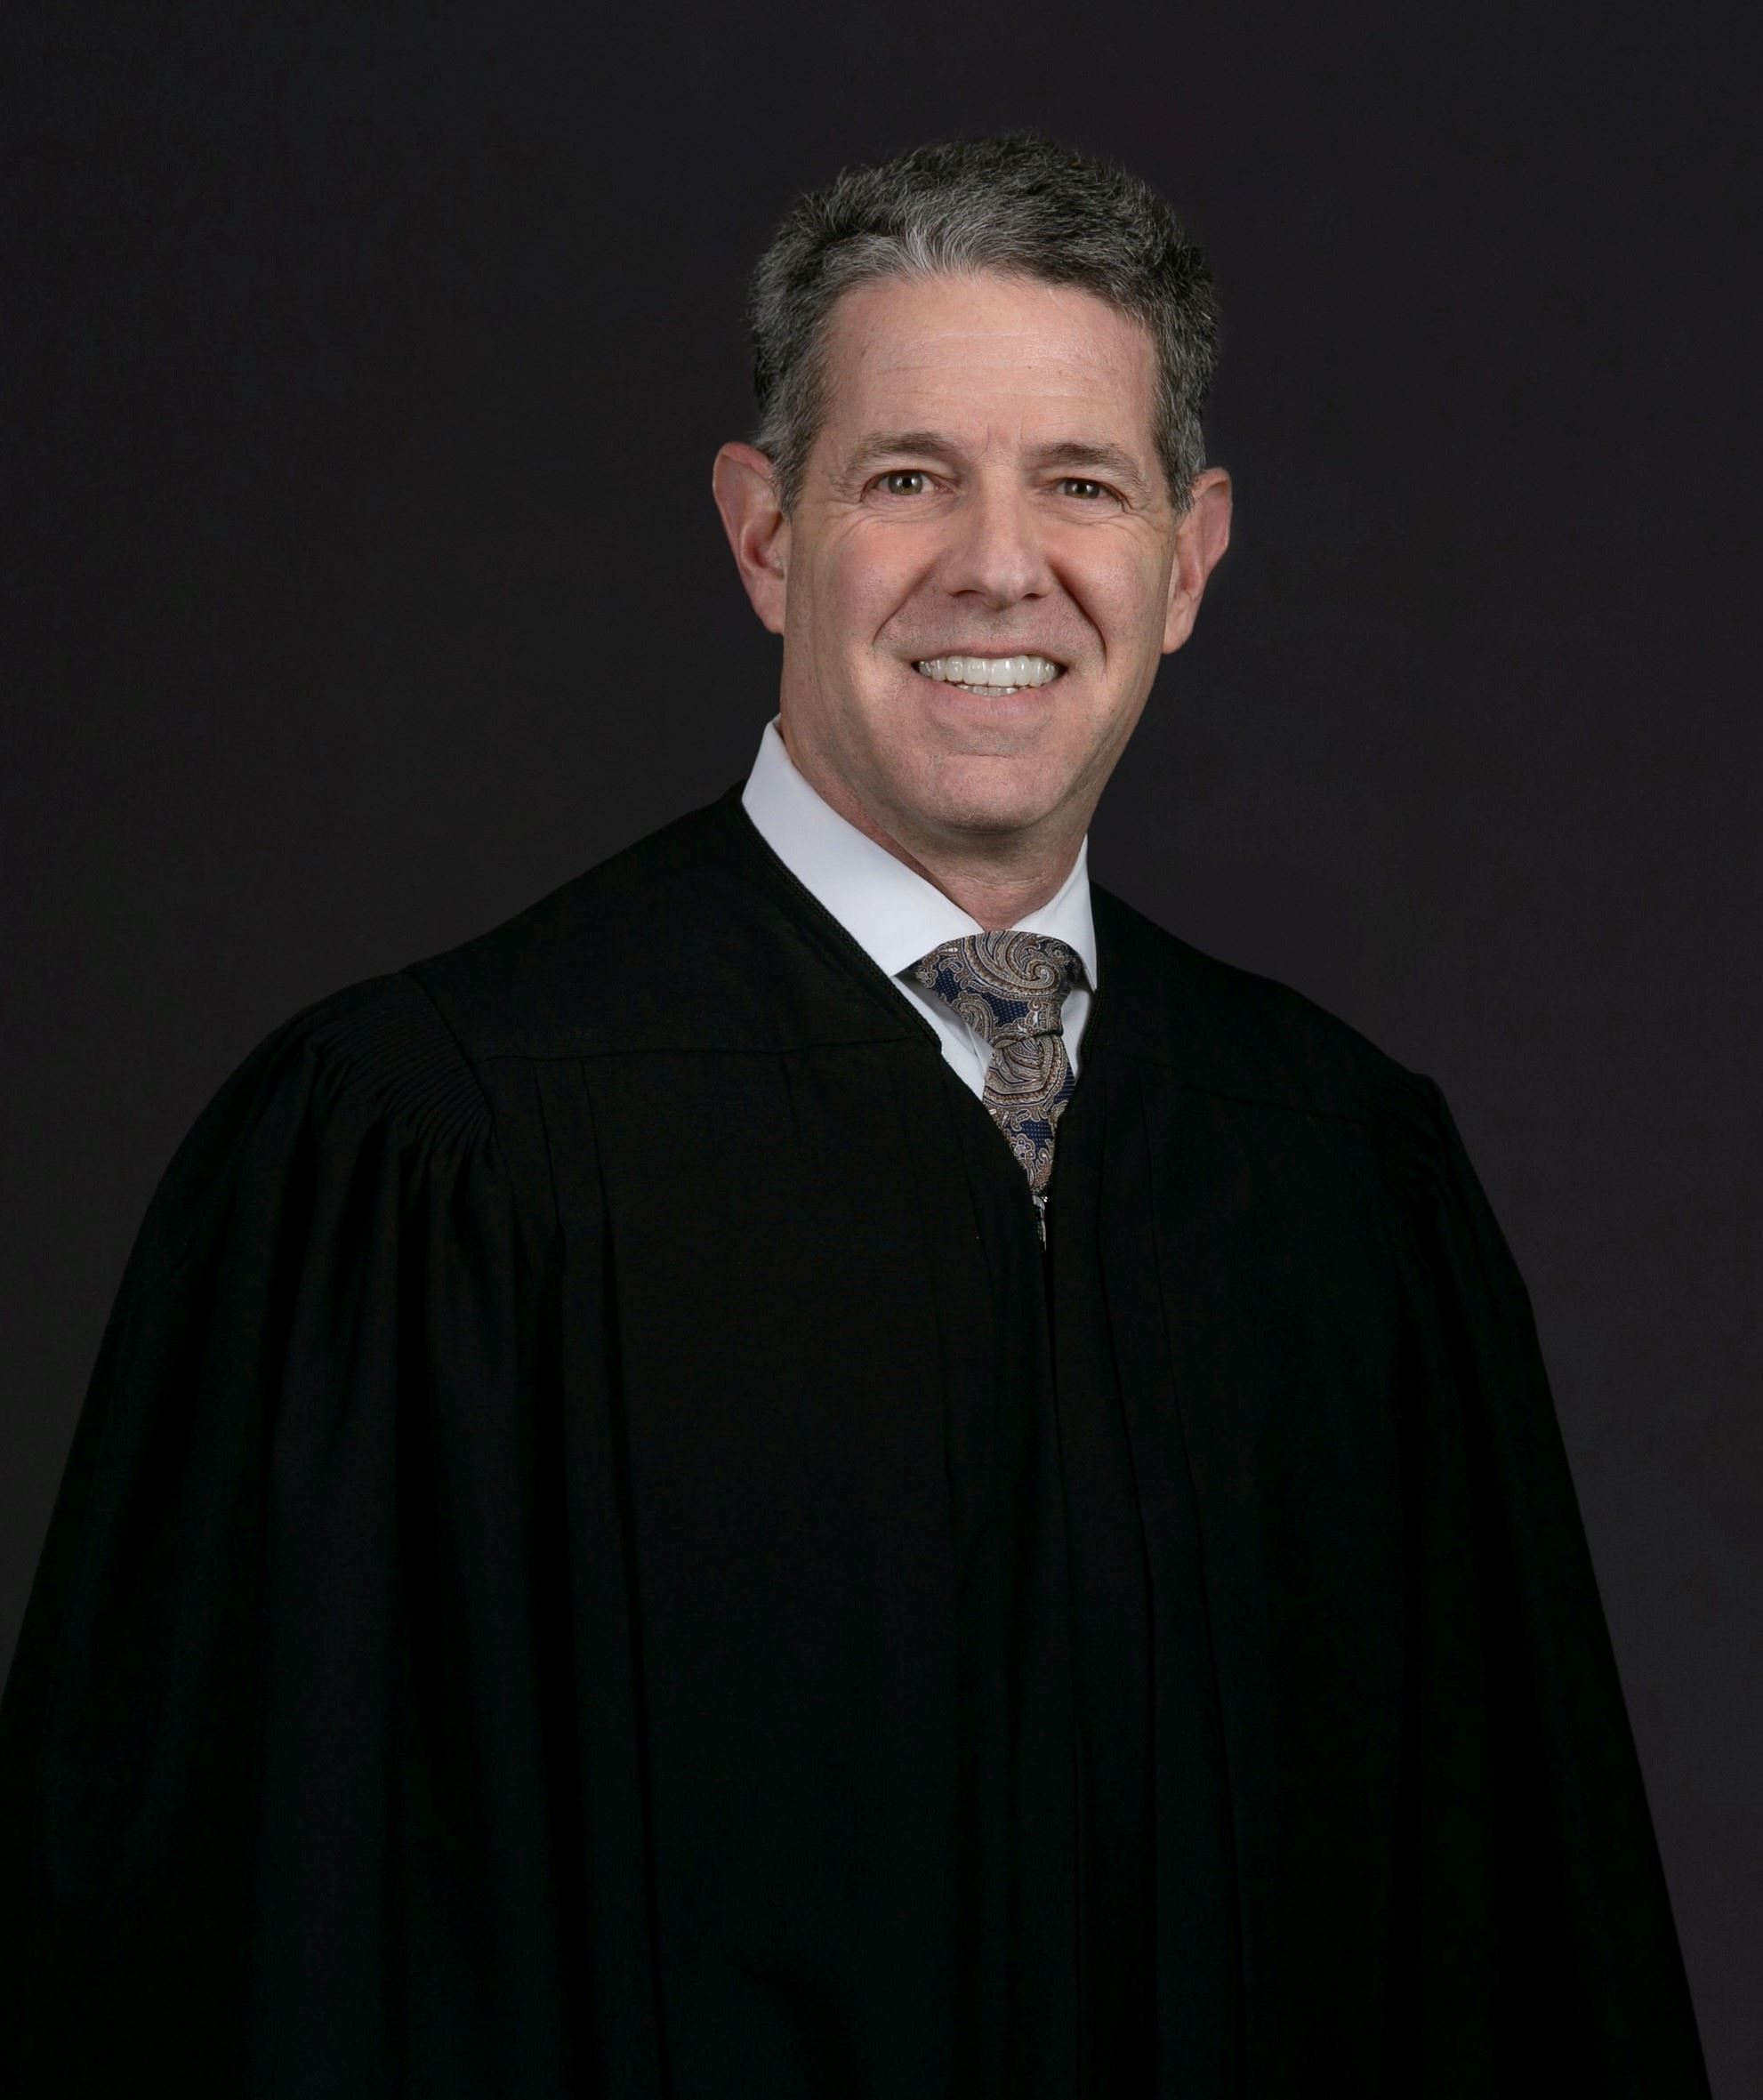 Headshot (Judge) 2020